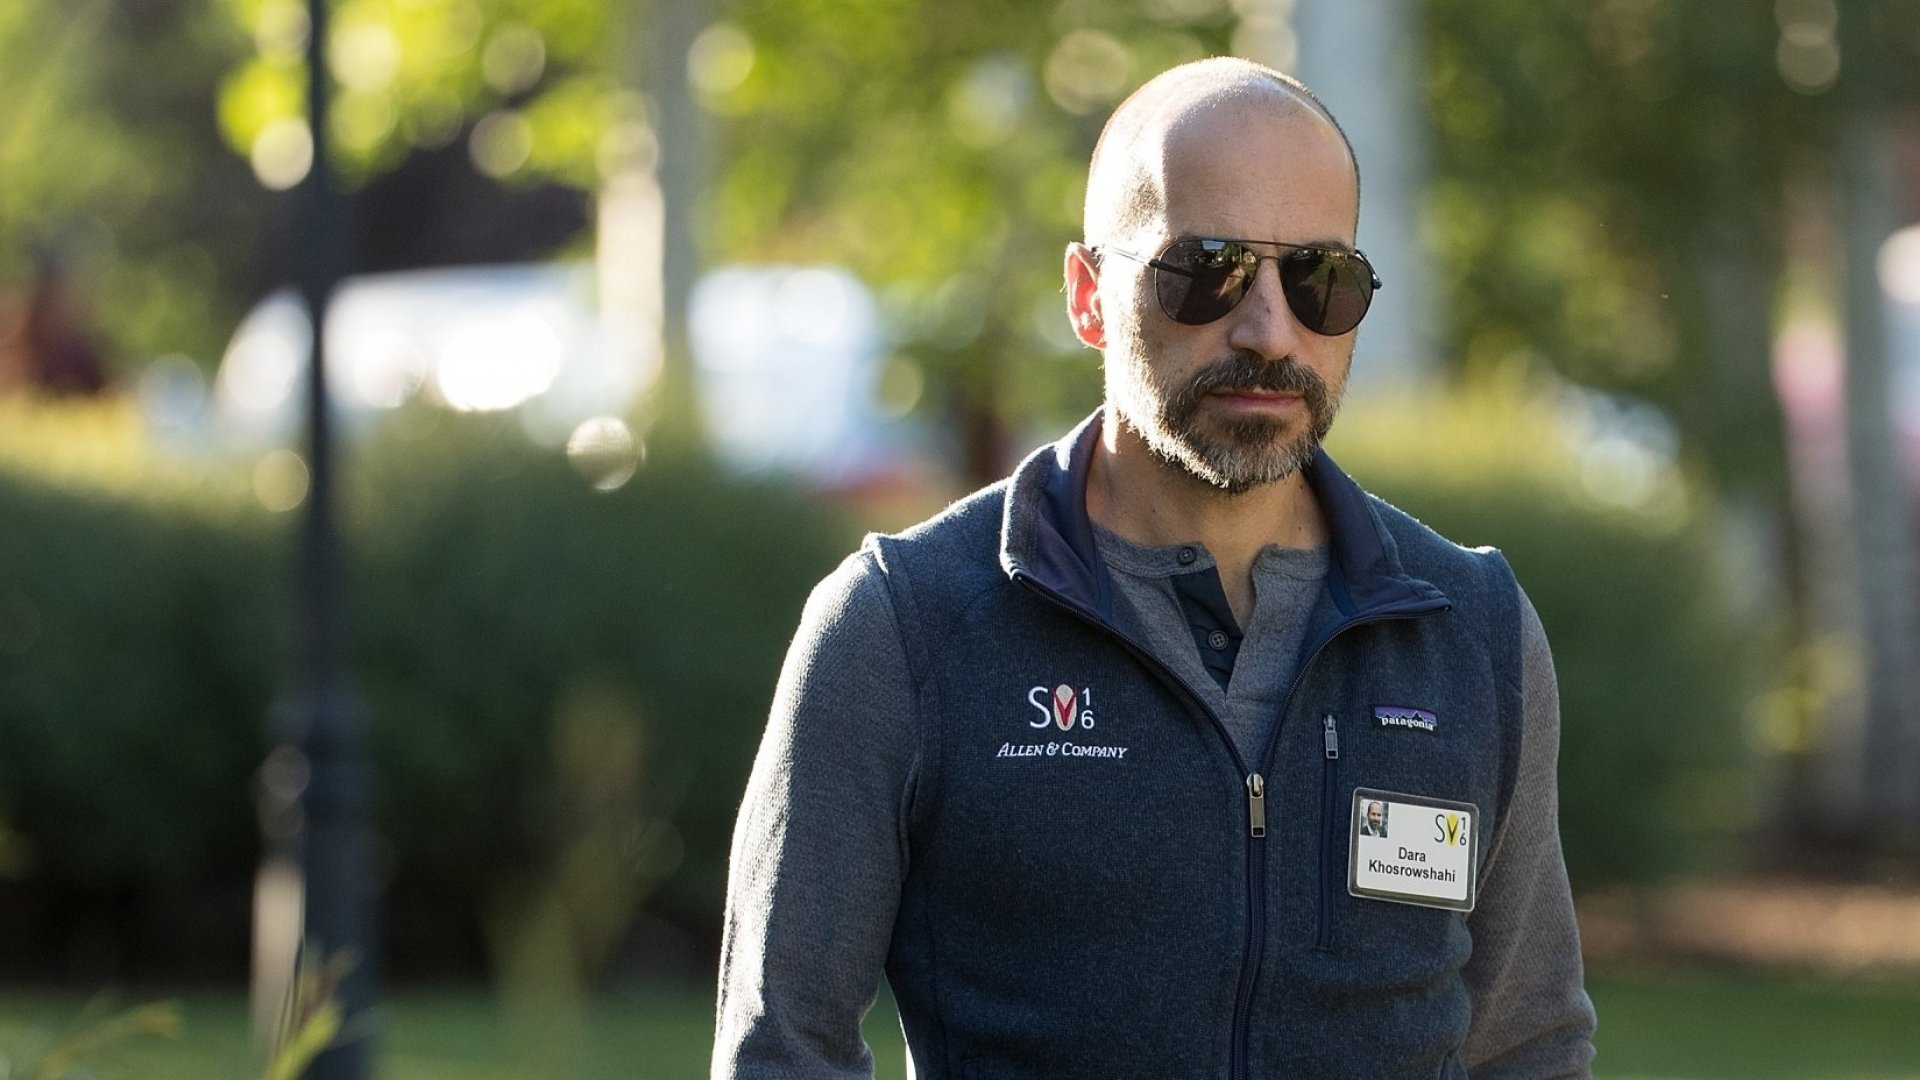 With Just 2 Words, Uber's New CEO Gave a Masterclass in Crisis Management and Public Relations